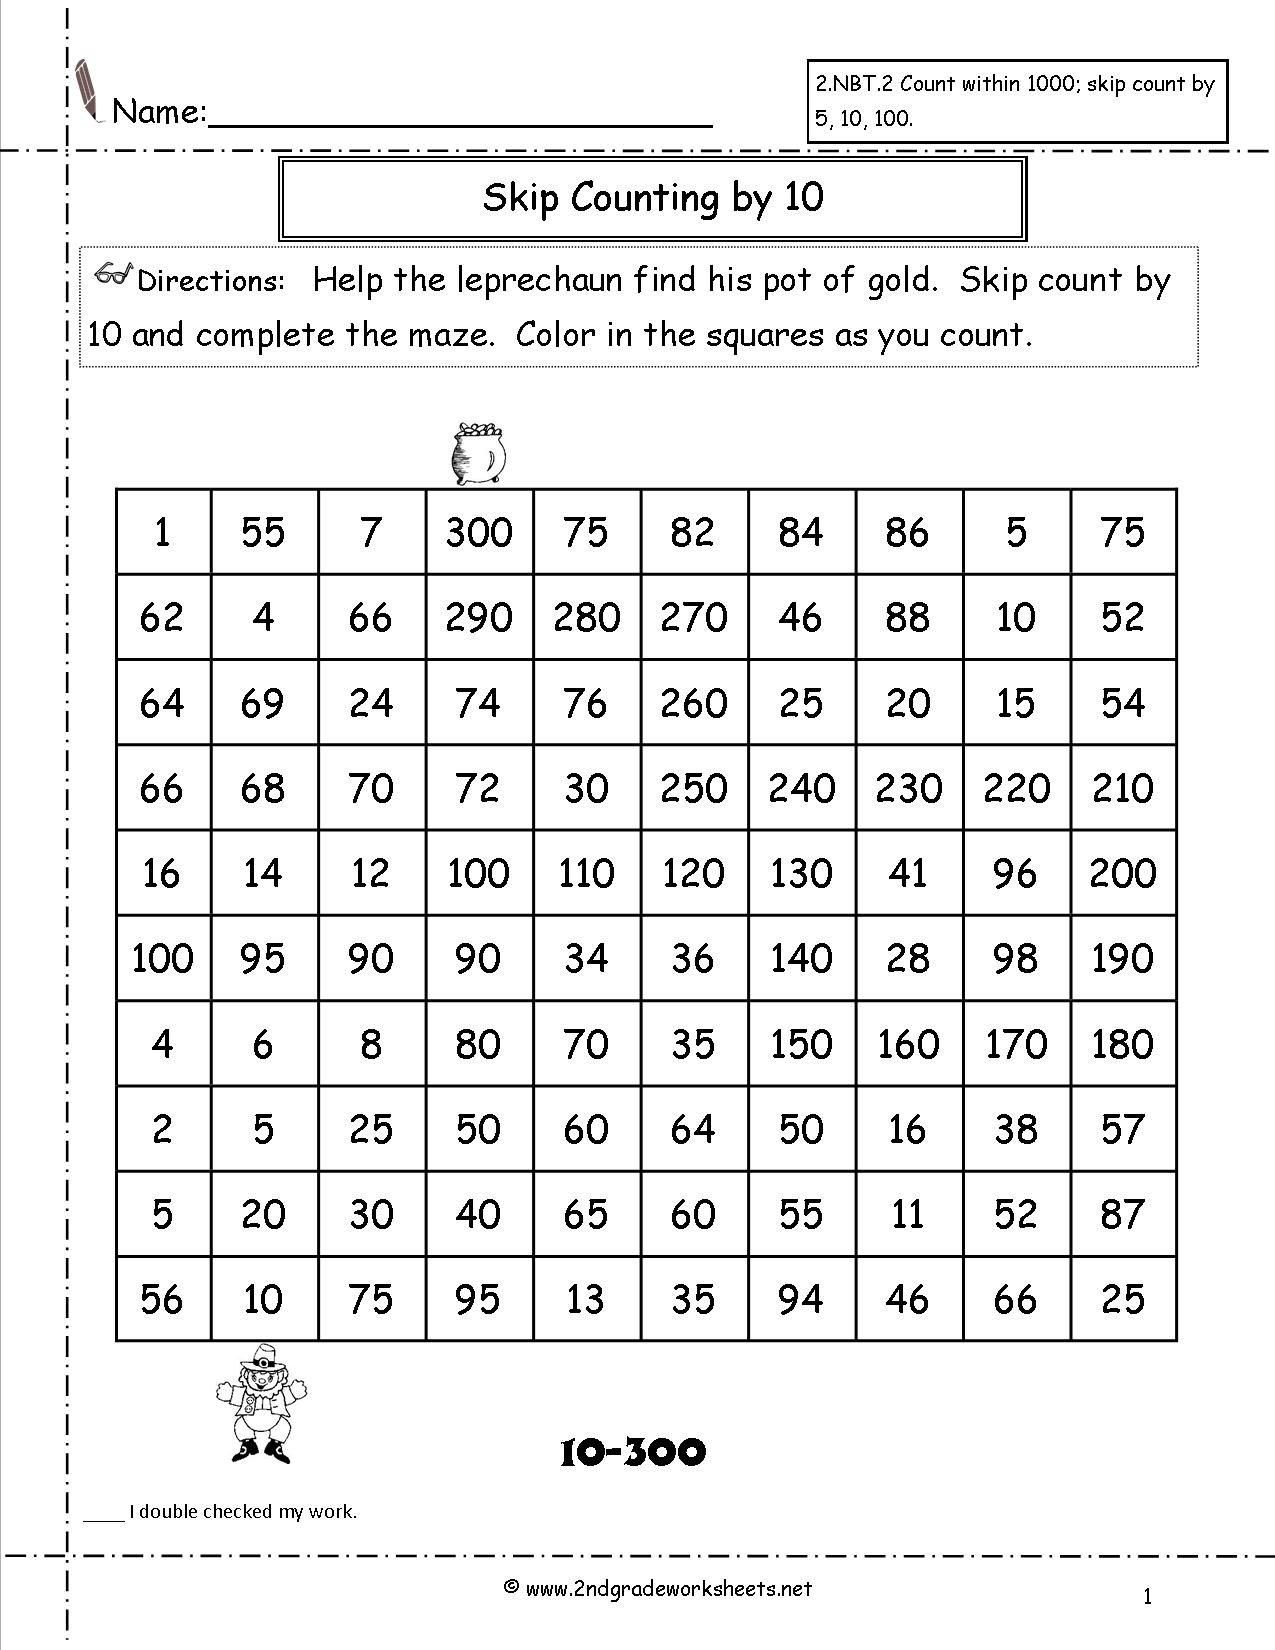 skip counting by 10 maze worksheet | Math | Pinterest | Skip ...